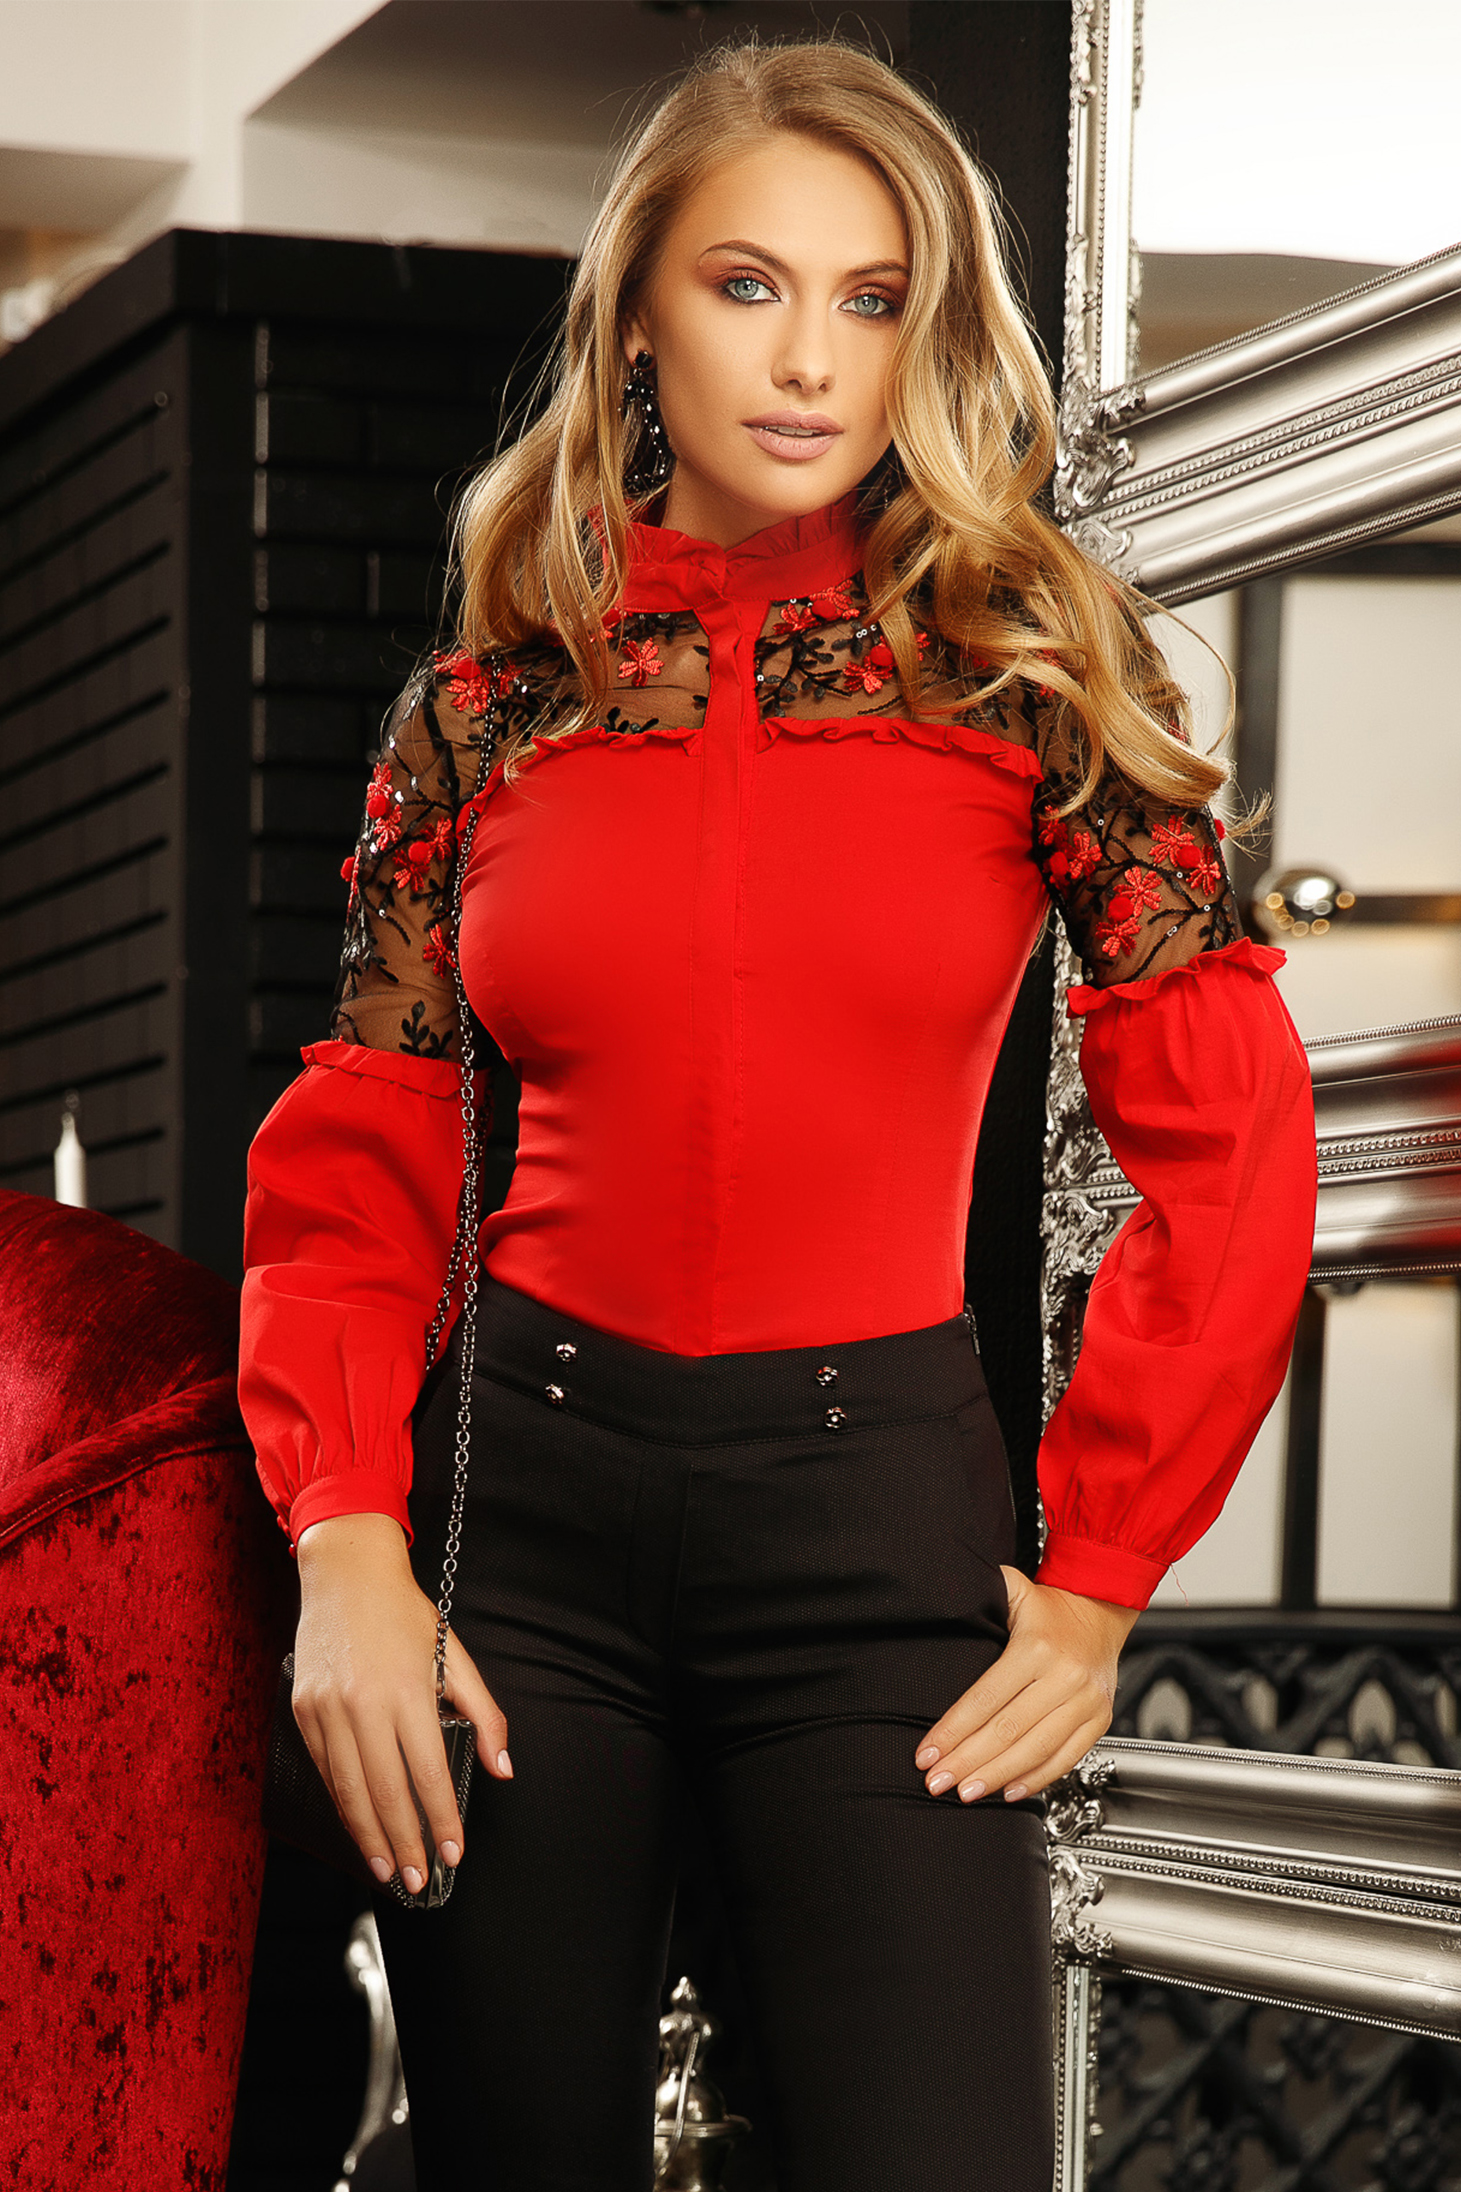 Women`s shirt red elegant tented short cut cotton with net accessory with 3d effect